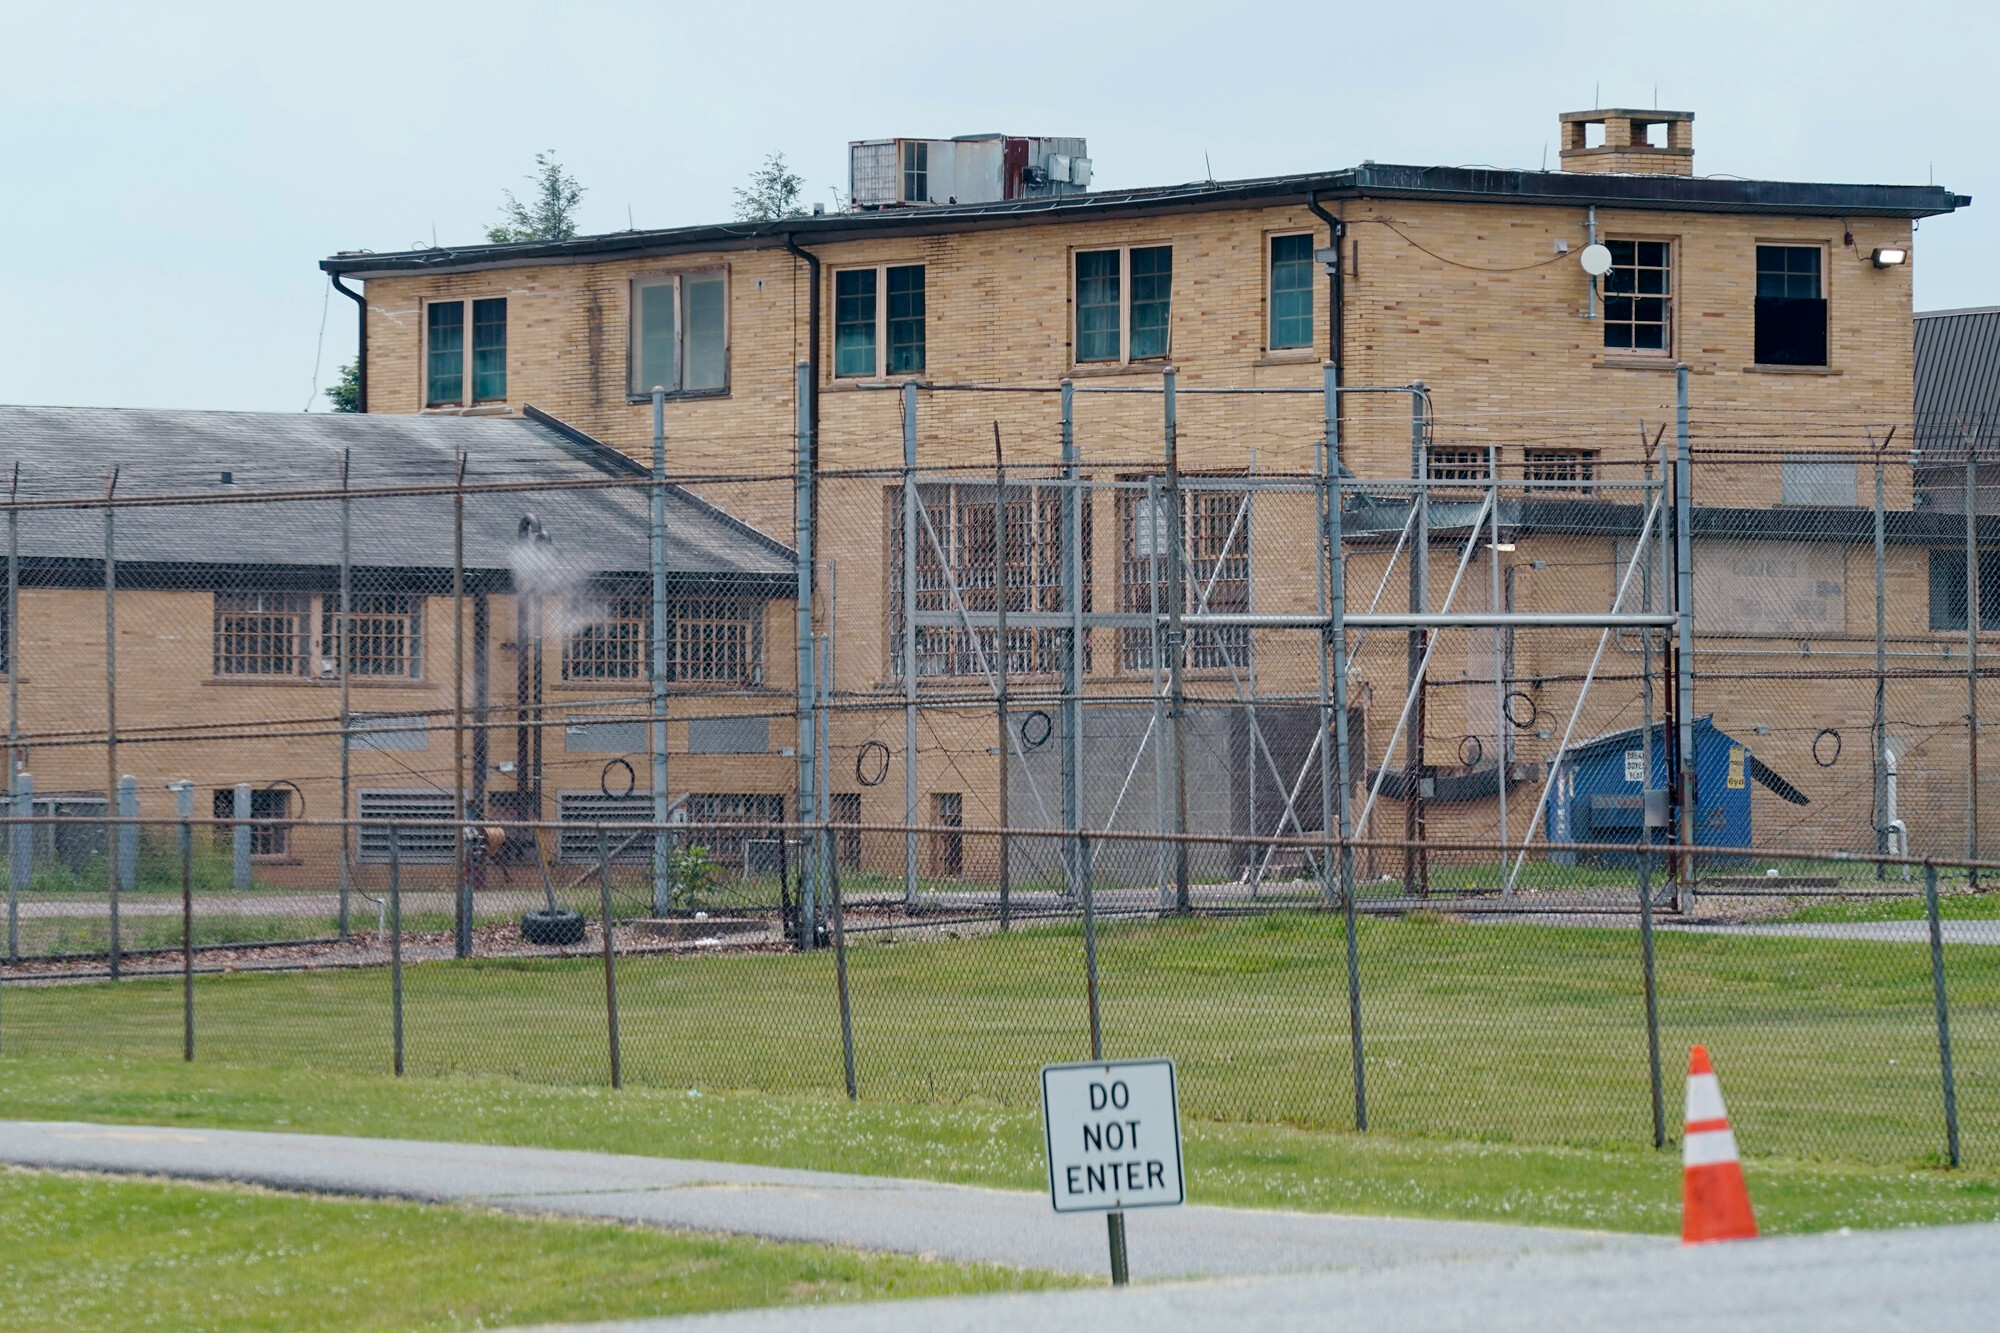 Newly released video shows alleged abuse at a soon-to-be shuttered New Jersey correctional facility